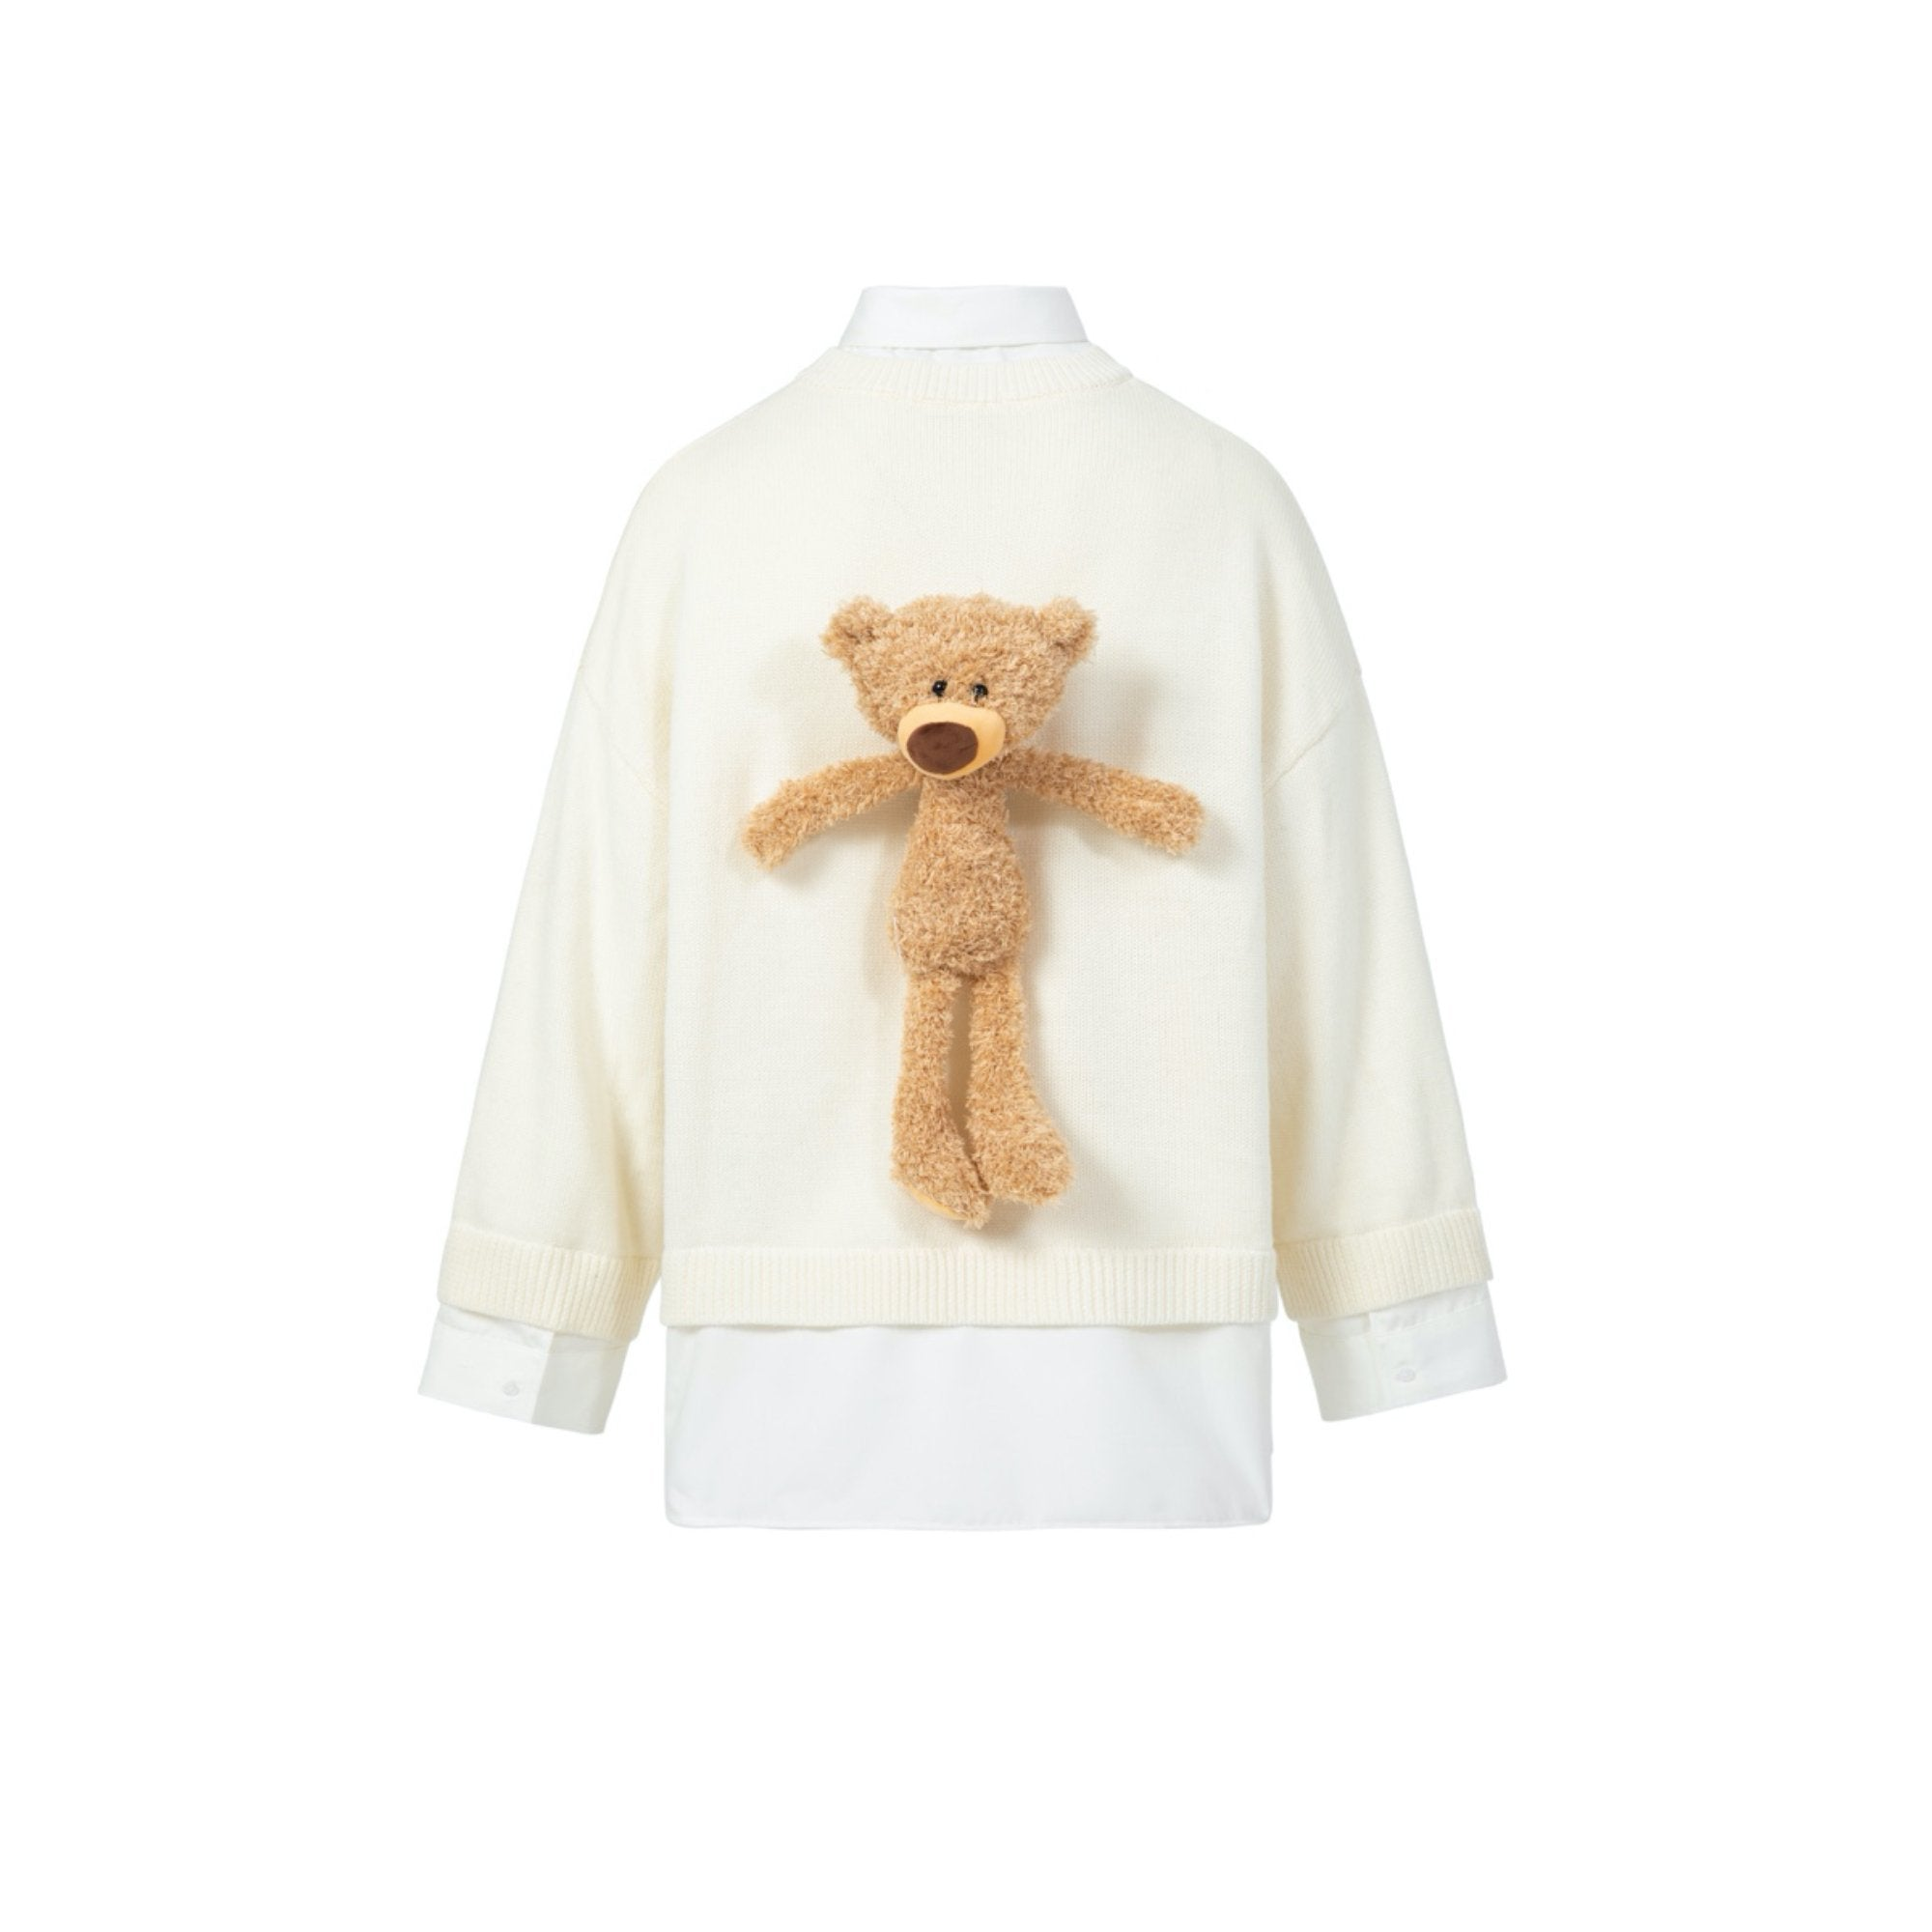 13 DE MARZO Daisy Teddy Bear Mock Two-Piece Sweater White | MADA IN CHINA